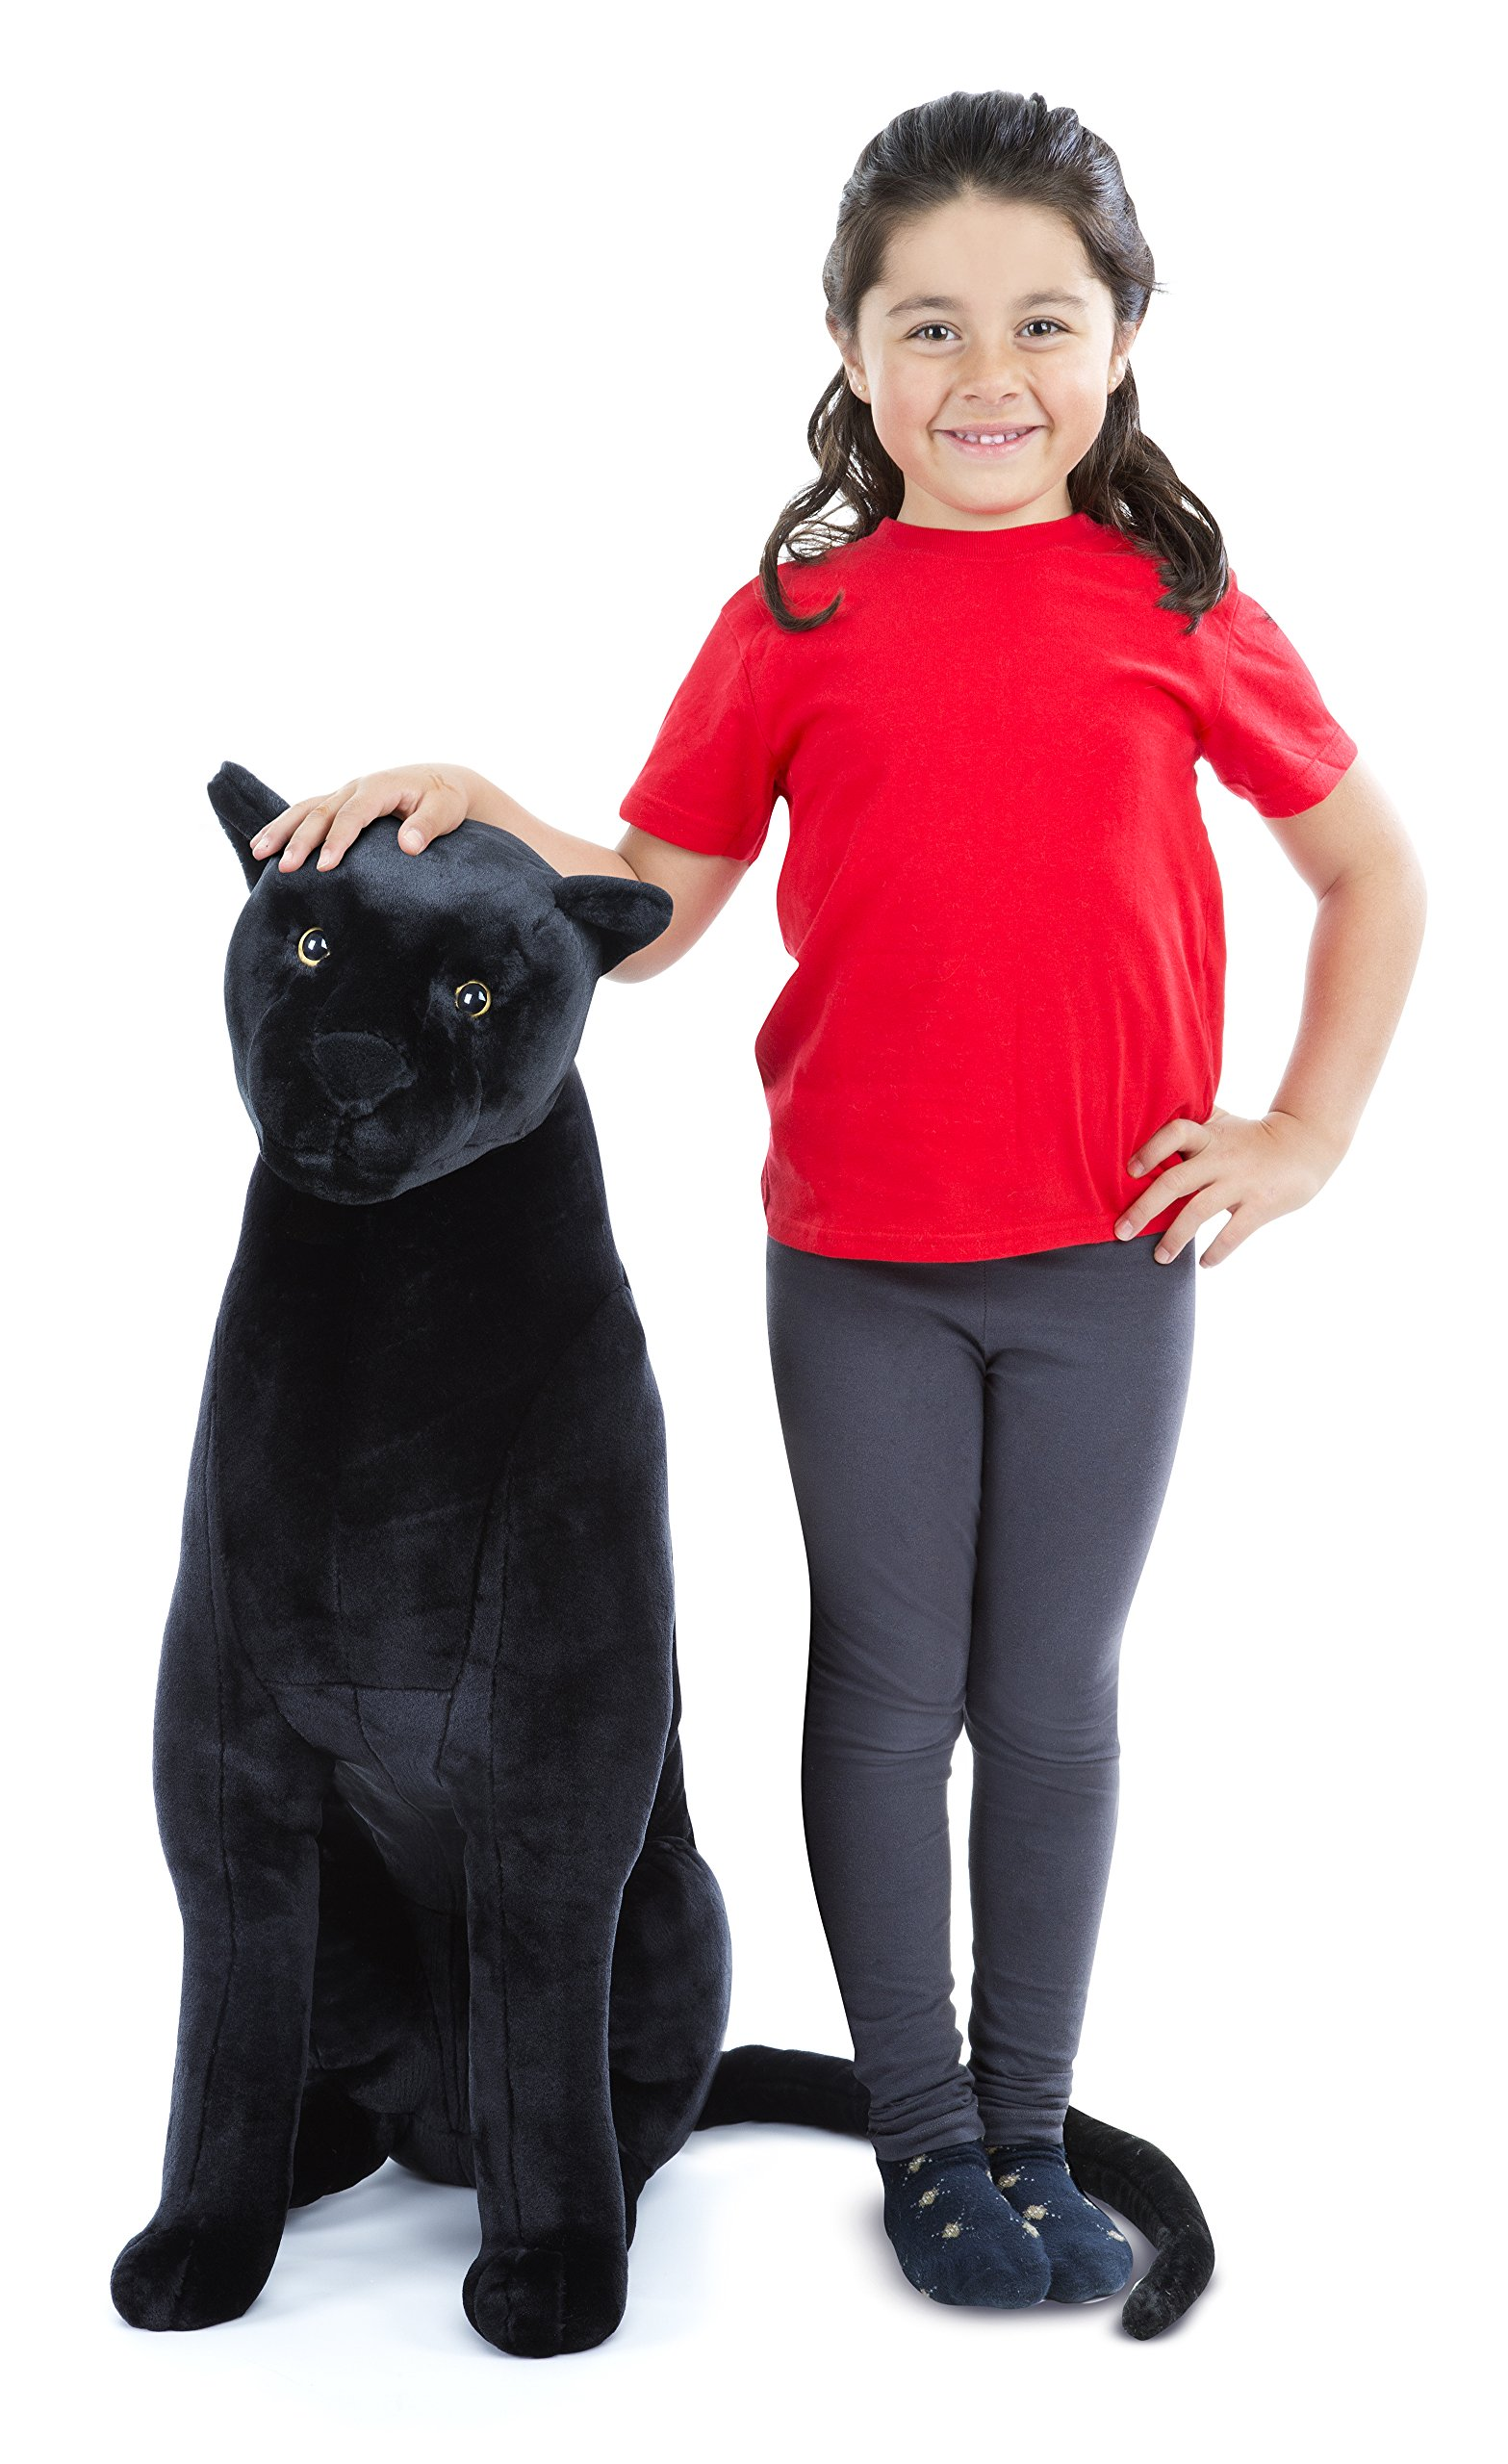 Melissa & Doug Giant Panther - Lifelike Stuffed Animal  (nearly 3 feet tall) by Melissa & Doug